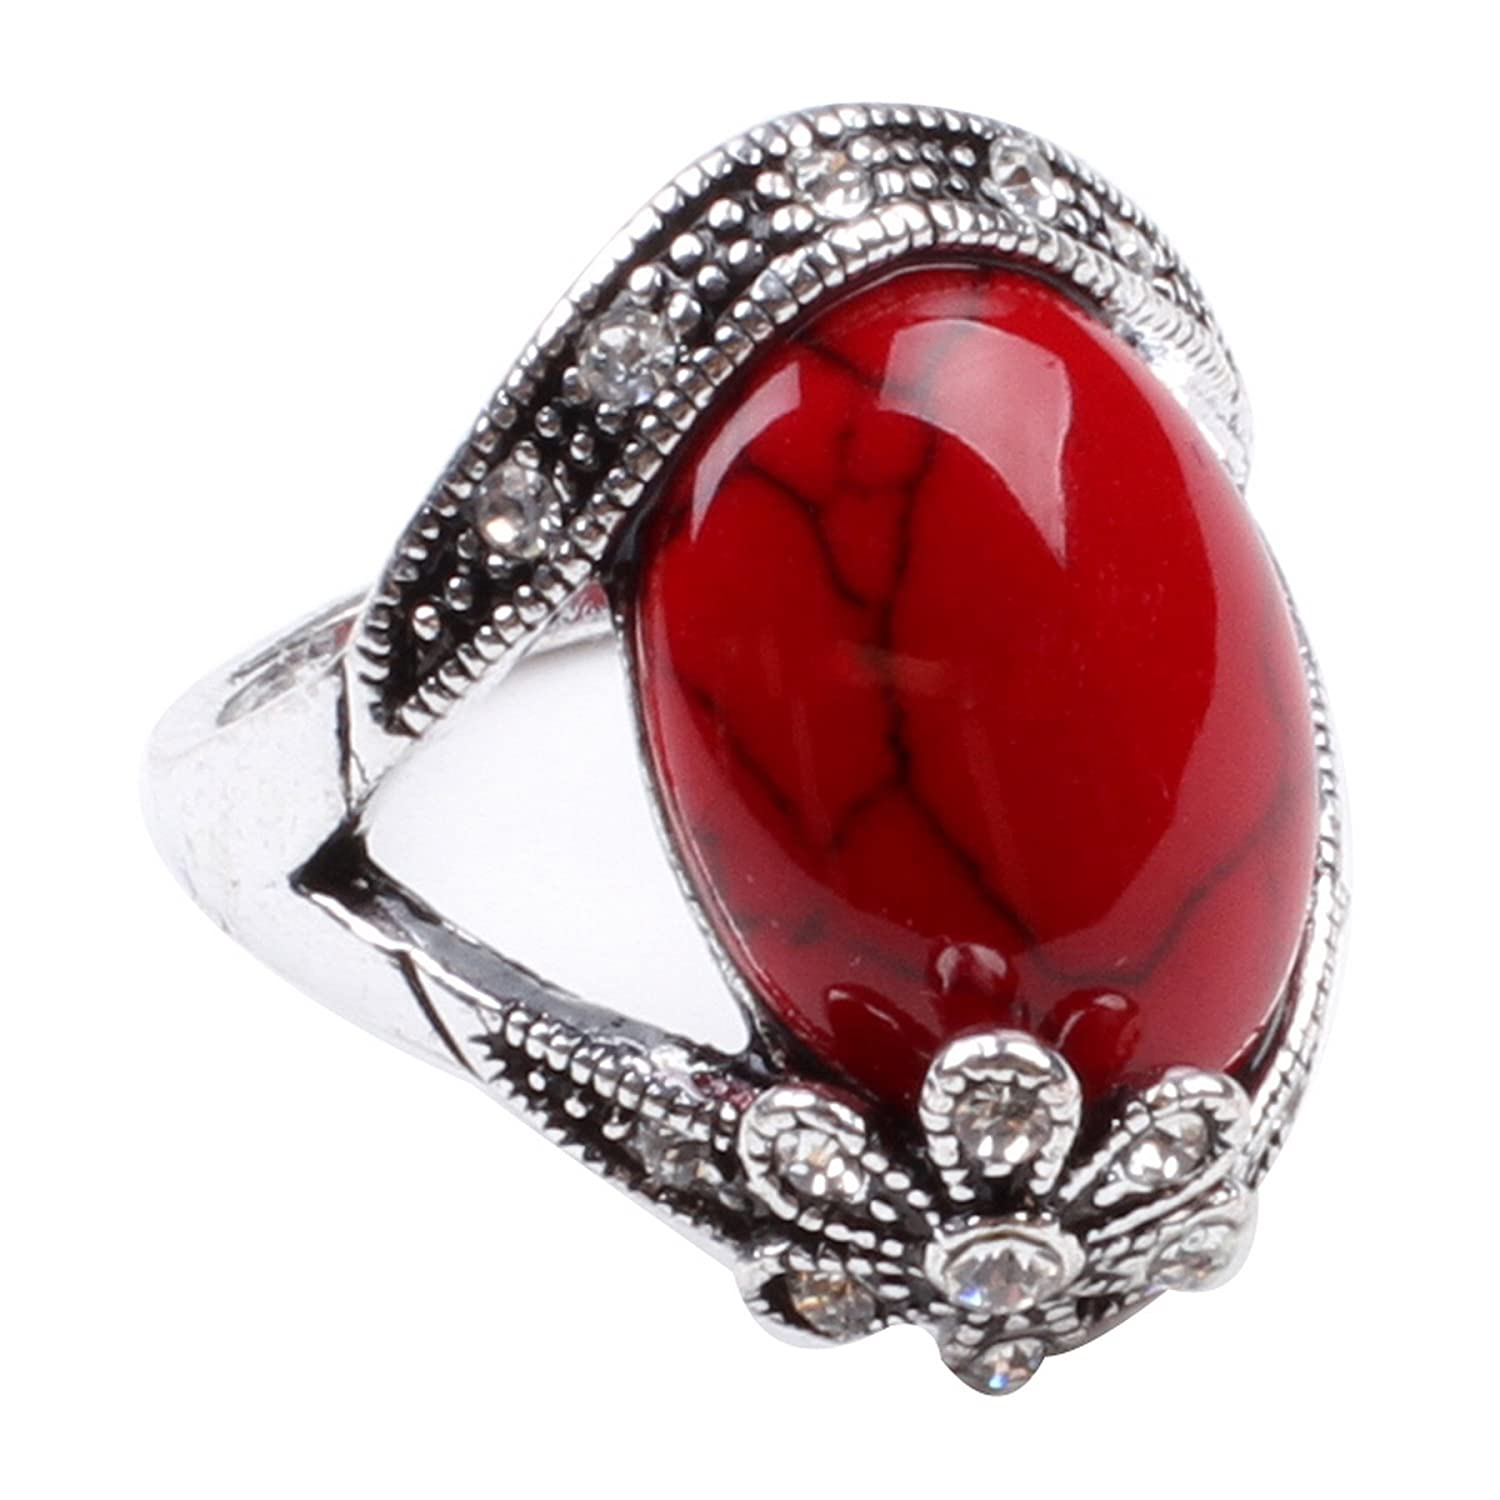 red for jesus steel rings beauty product essentials female fashion jewelry stainless casting ring directory women wawfrok